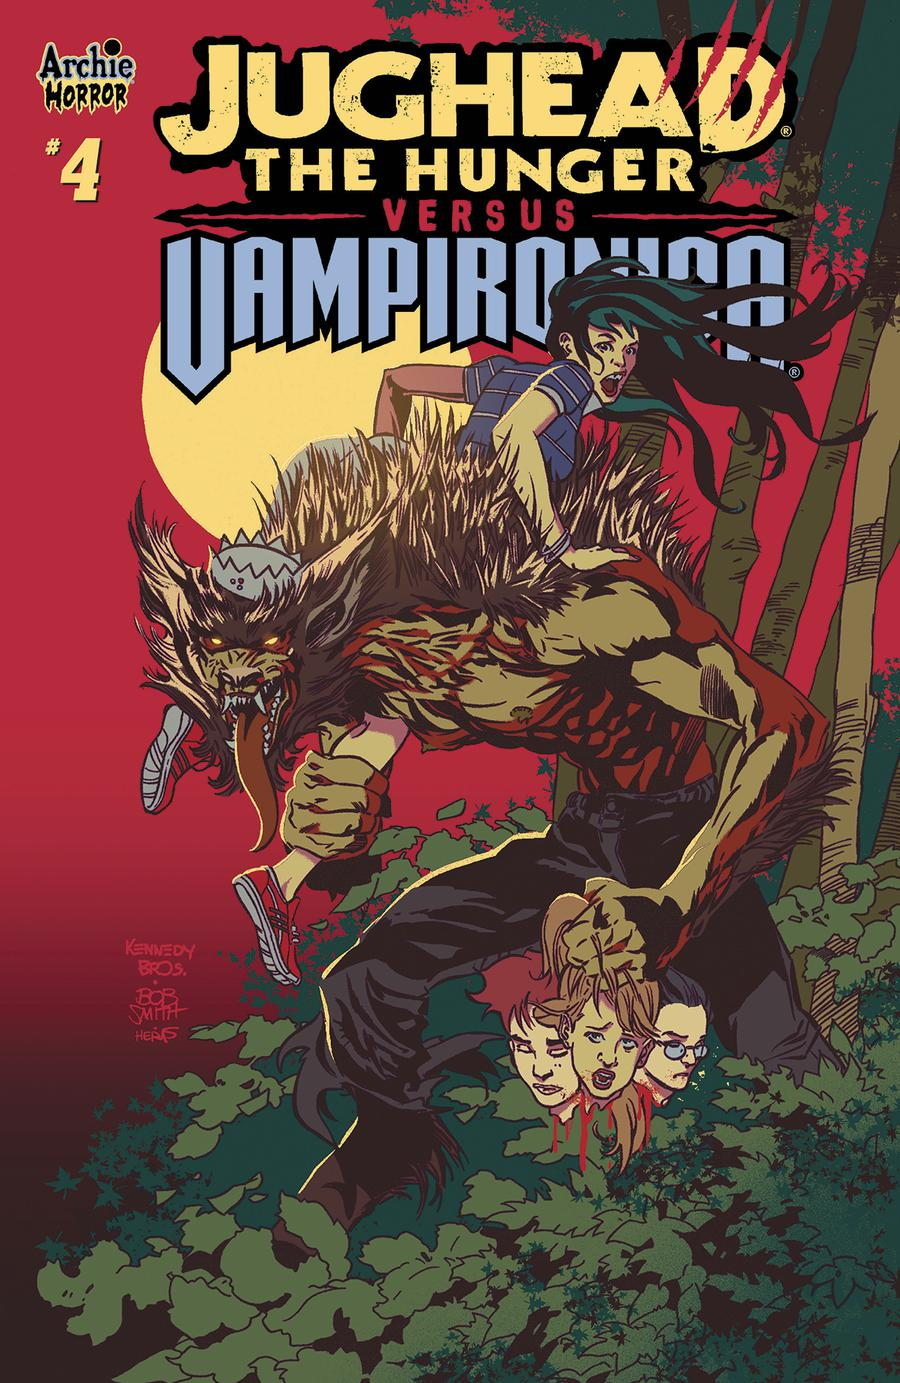 Jughead The Hunger Versus Vampironica #4 Cover A Regular Pat Kennedy & Tim Kennedy Cover